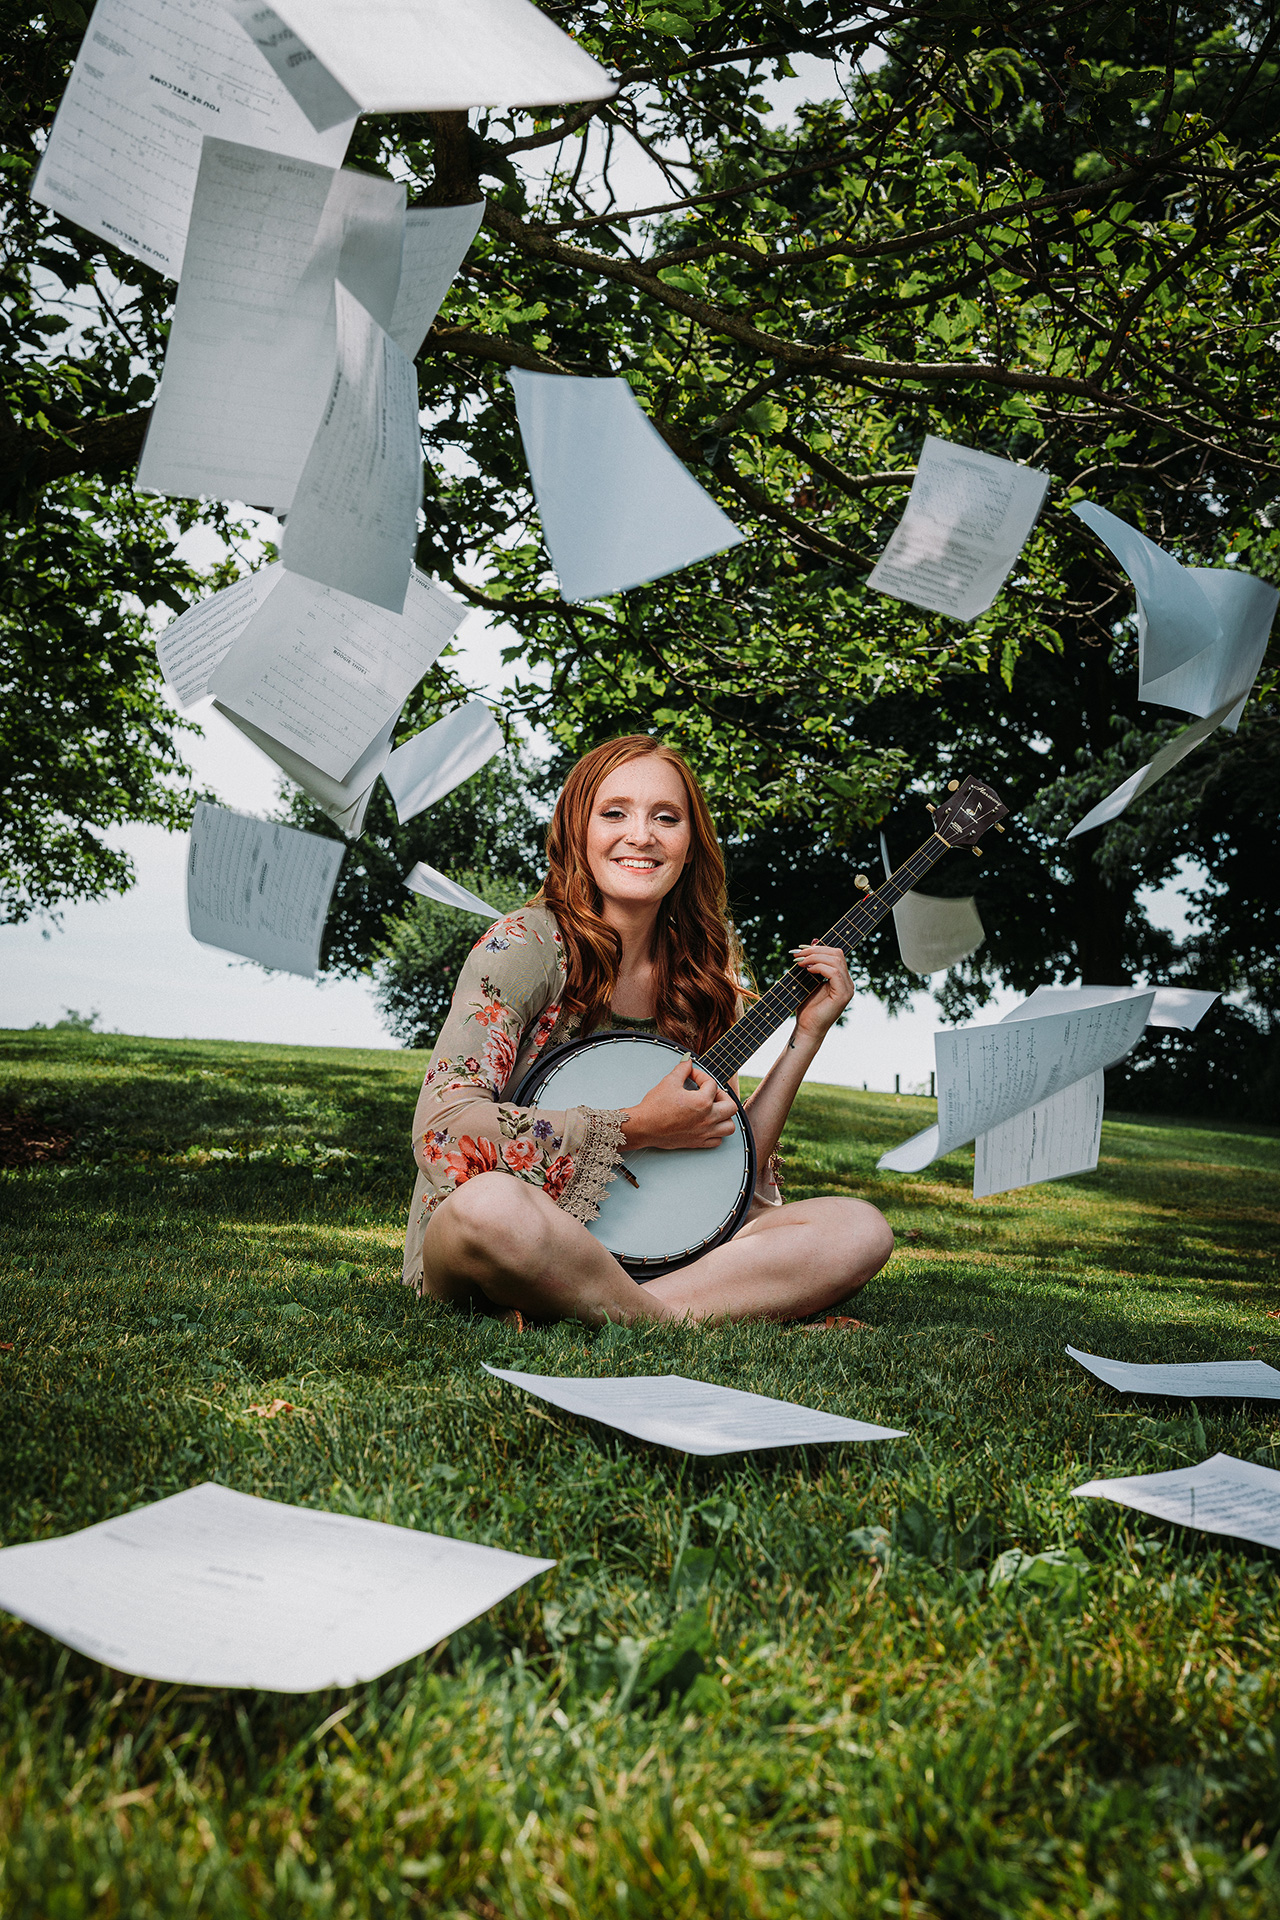 Senior photo of a girl with a banjo and sheet music